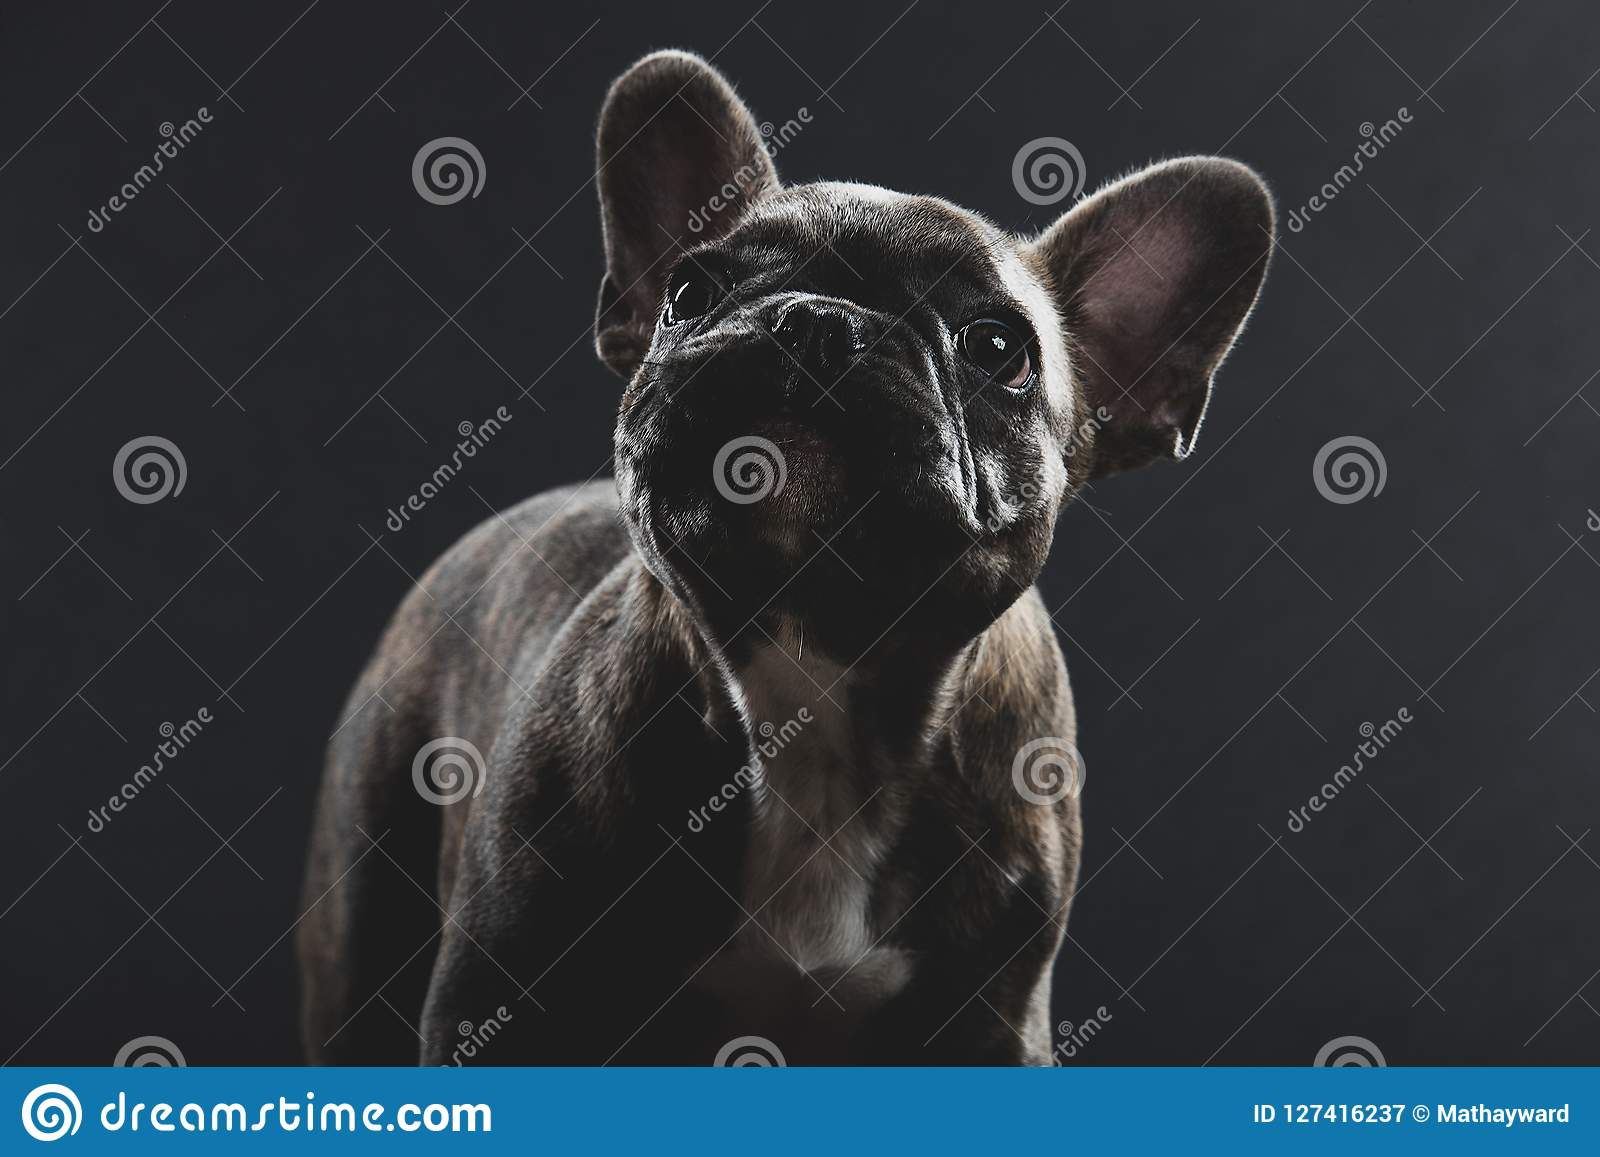 Cute French Bulldog Puppy Portrait Stock Image Image Of Frenchie Breed 127416237